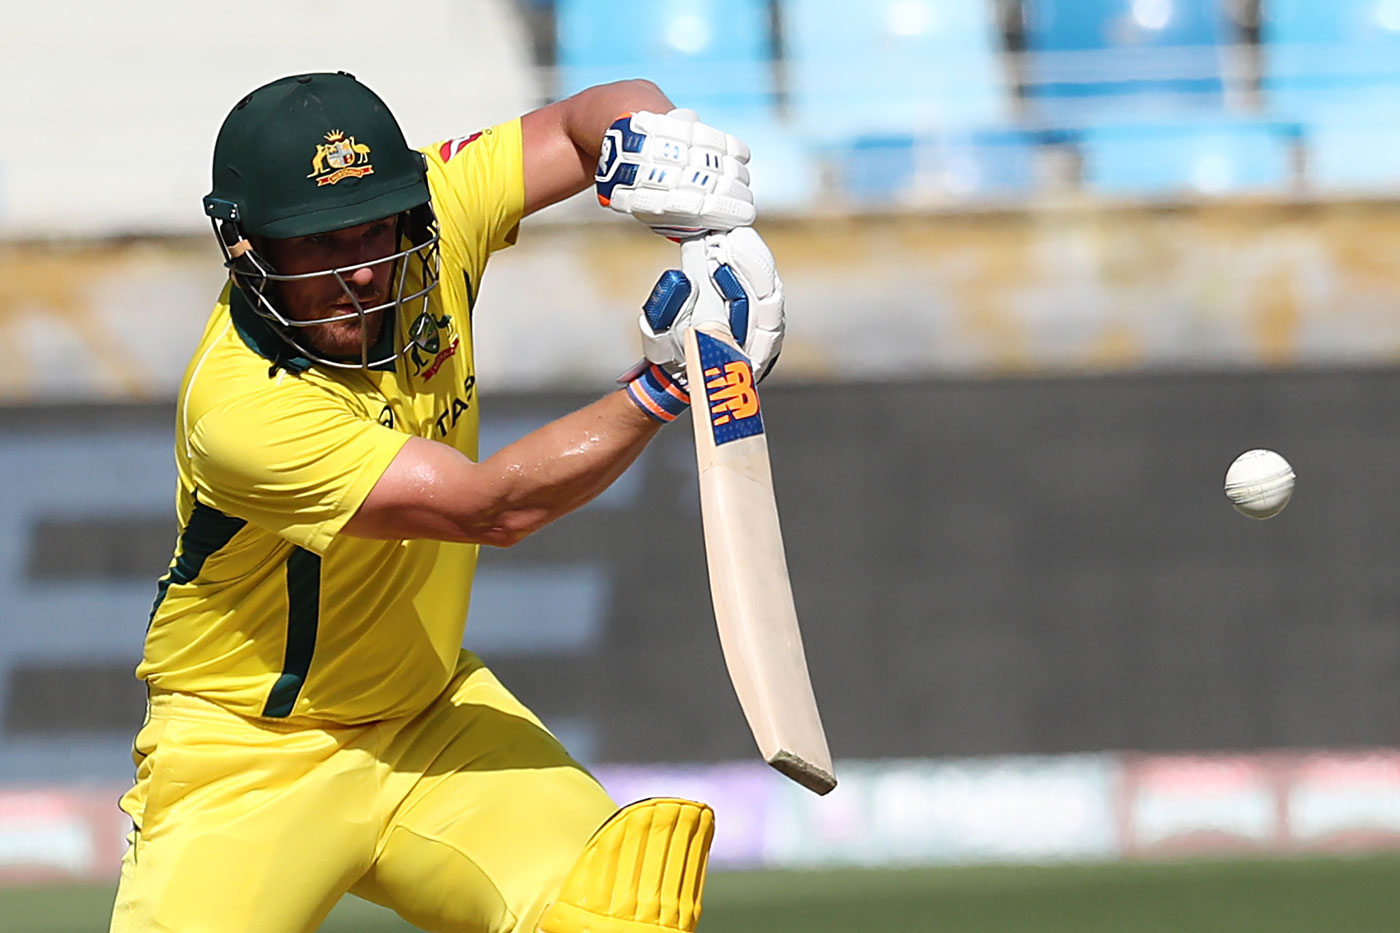 Australia sweeps Pakistan 5-0 in ODI series